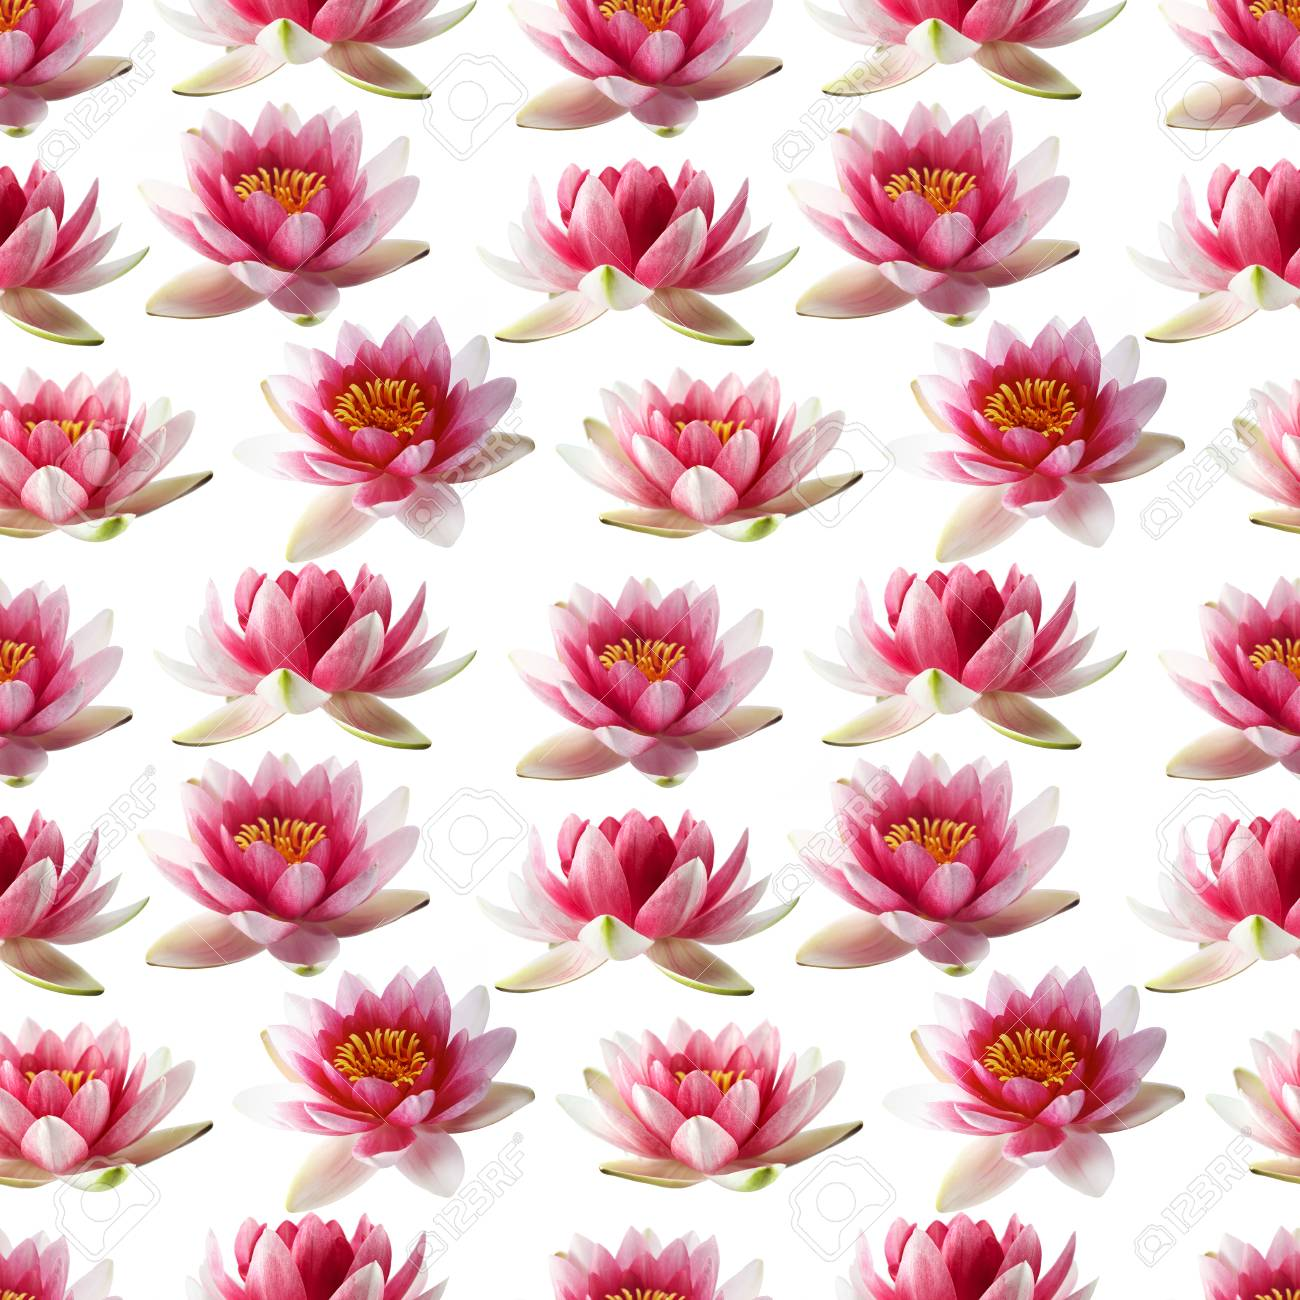 Lotus flowers seamless pattern isolated stock photo picture and lotus flowers seamless pattern isolated stock photo 44049832 izmirmasajfo